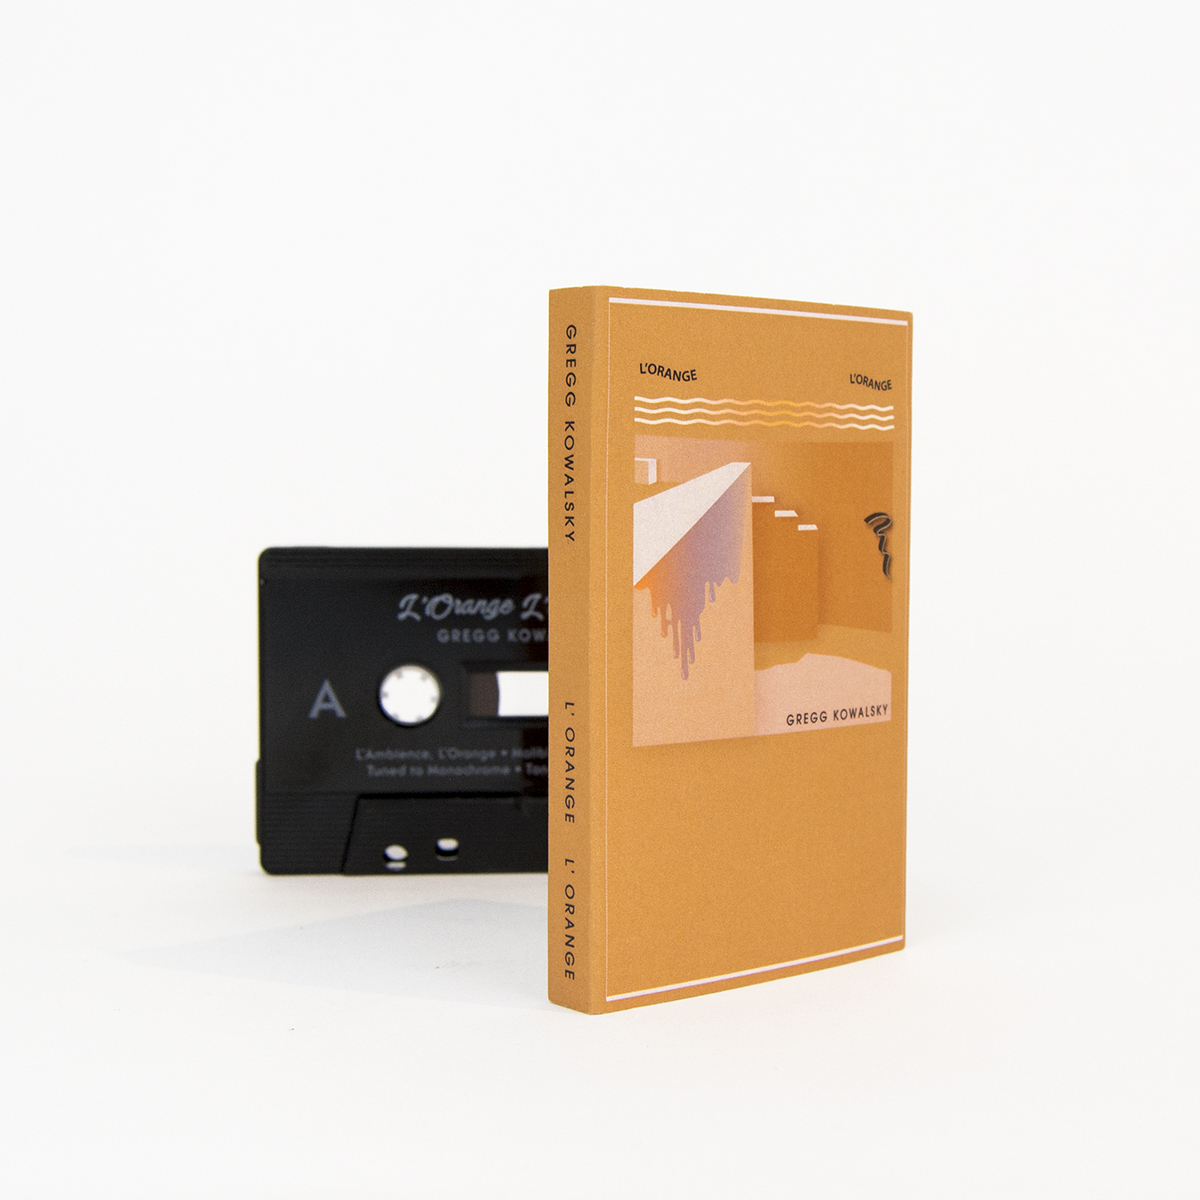 Gregg Kowalsky - L'Orange, L'Orange limited edition cassette